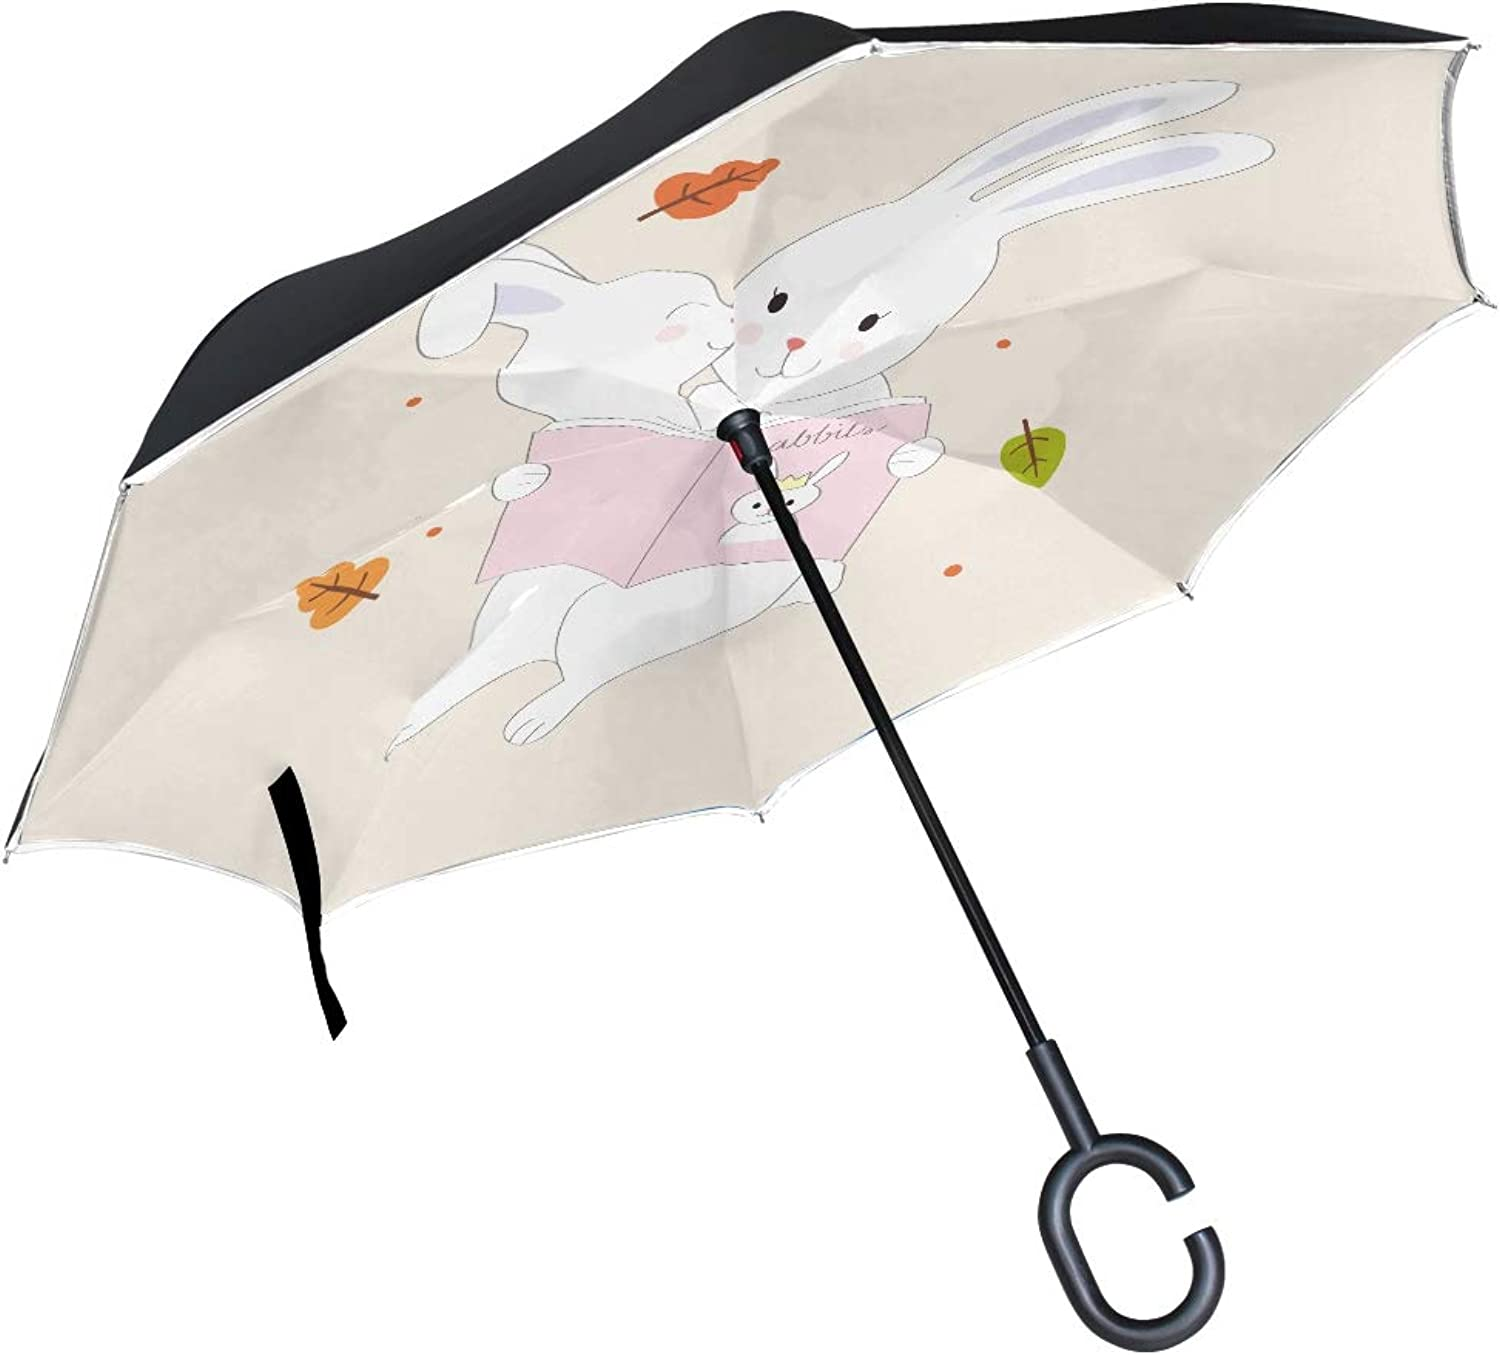 Double Layer Ingreened Cartoon Cute Mom Baby Rabbits Read Umbrellas Reverse Folding Umbrella Windproof Uv Predection Big Straight Umbrella for Car Rain Outdoor with CShaped Handle